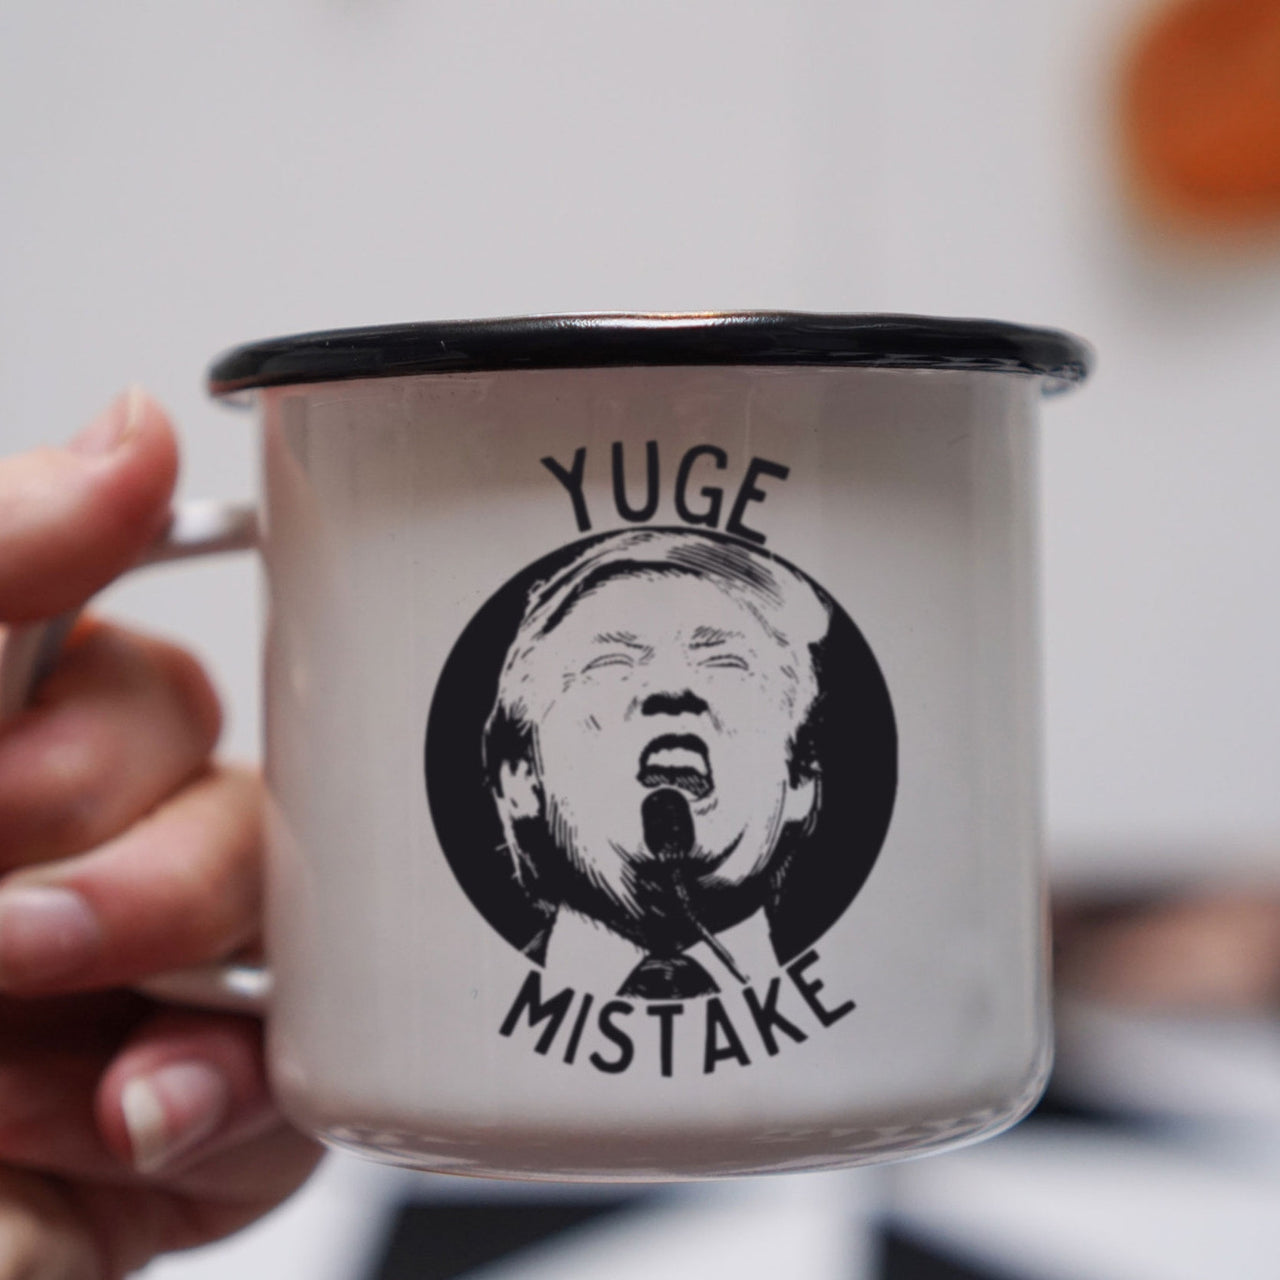 Yuge Mistake Anti Trump Mug